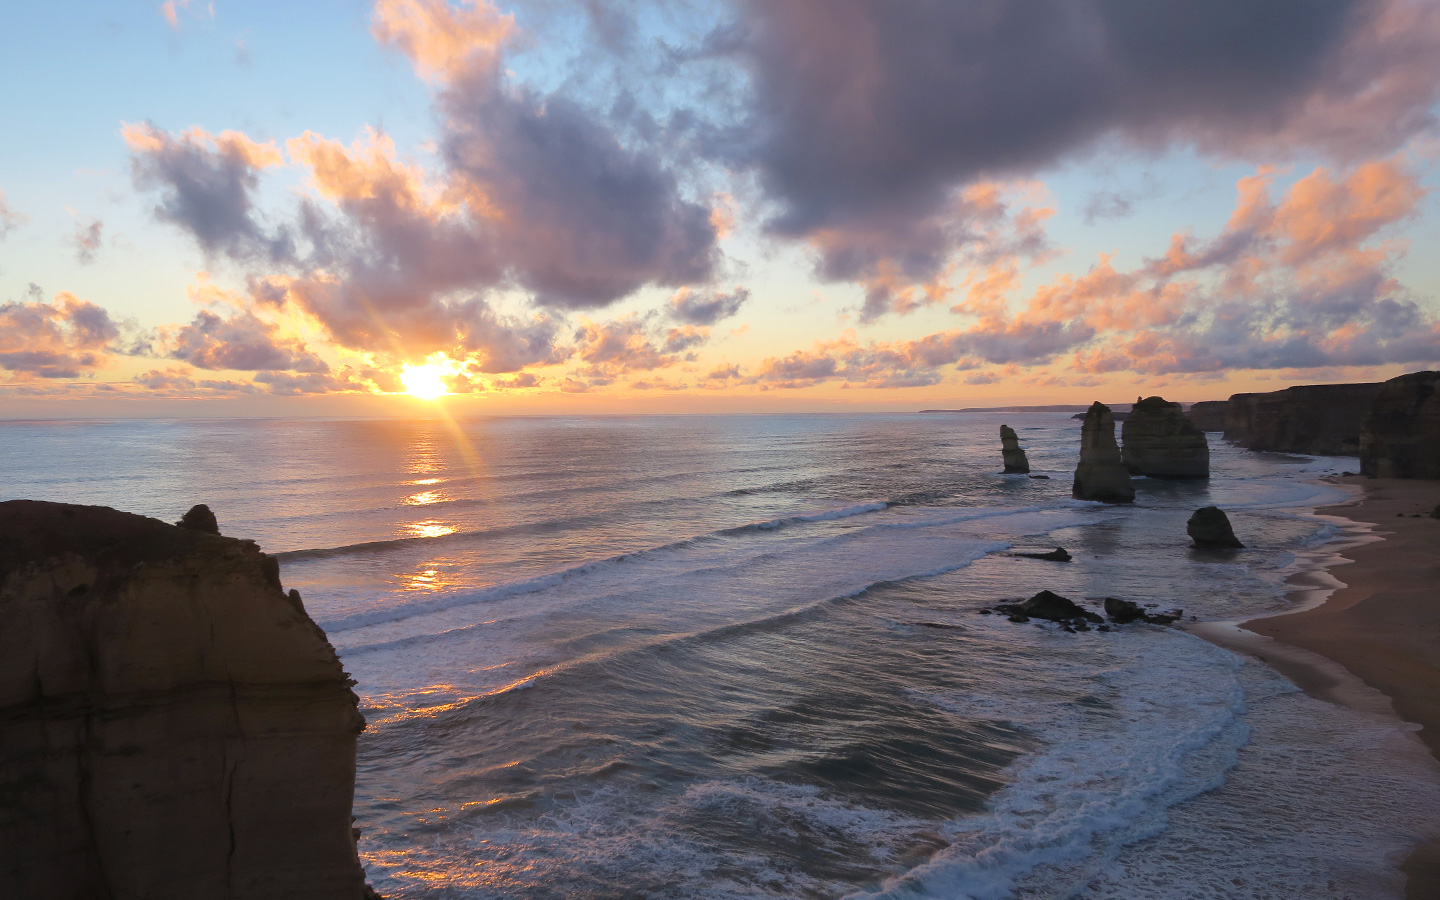 sunset at the twelve apostles on the great ocean road in australia